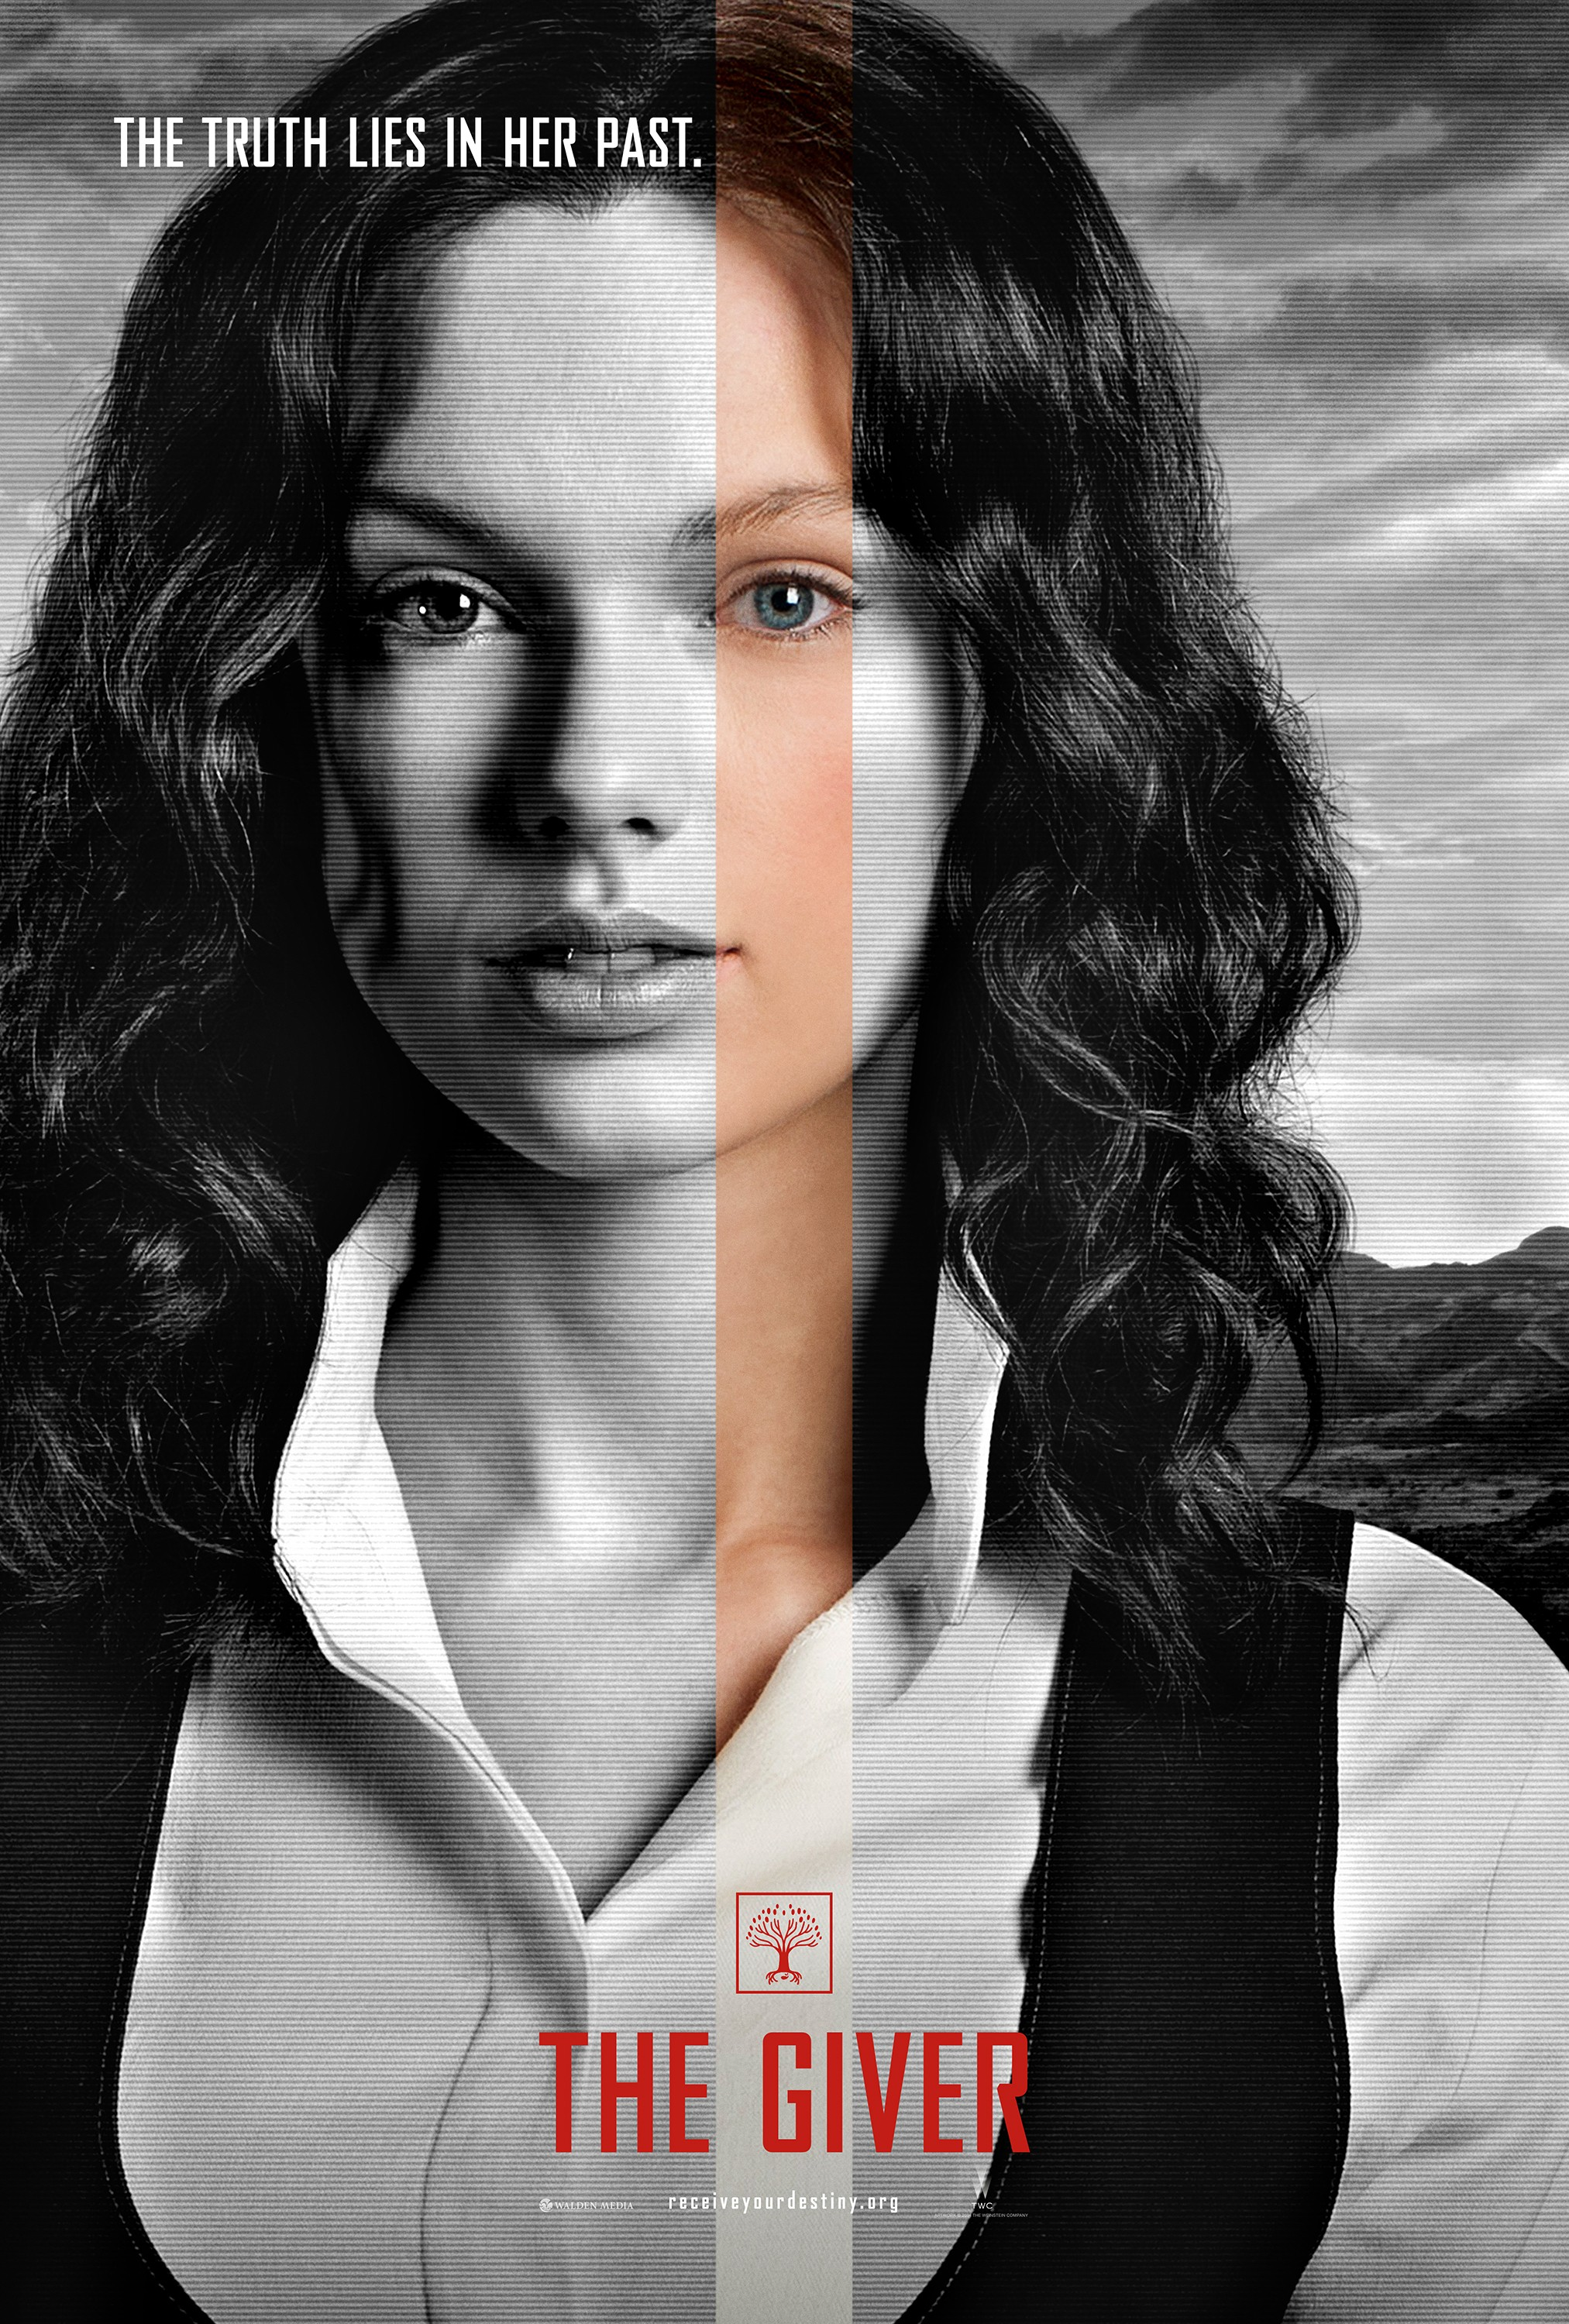 The Giver-Official Poster Banner PROMO XXLG-23MAIO2014-08